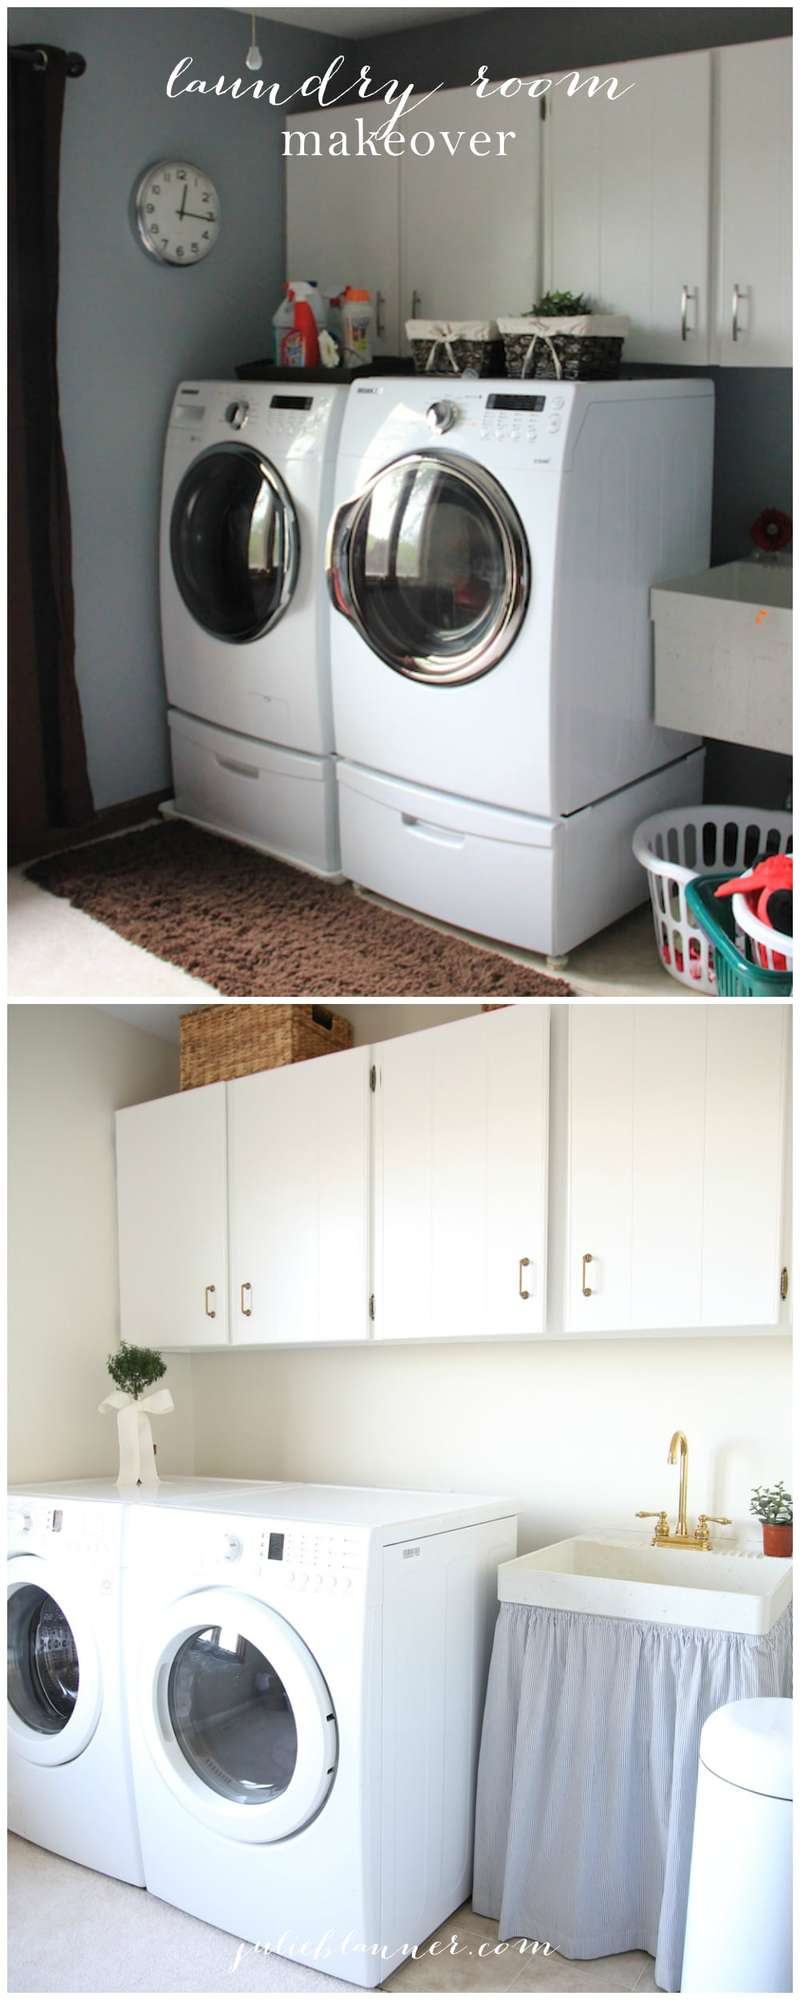 Inexpensive laundry room makeover - see the incredible before & after!